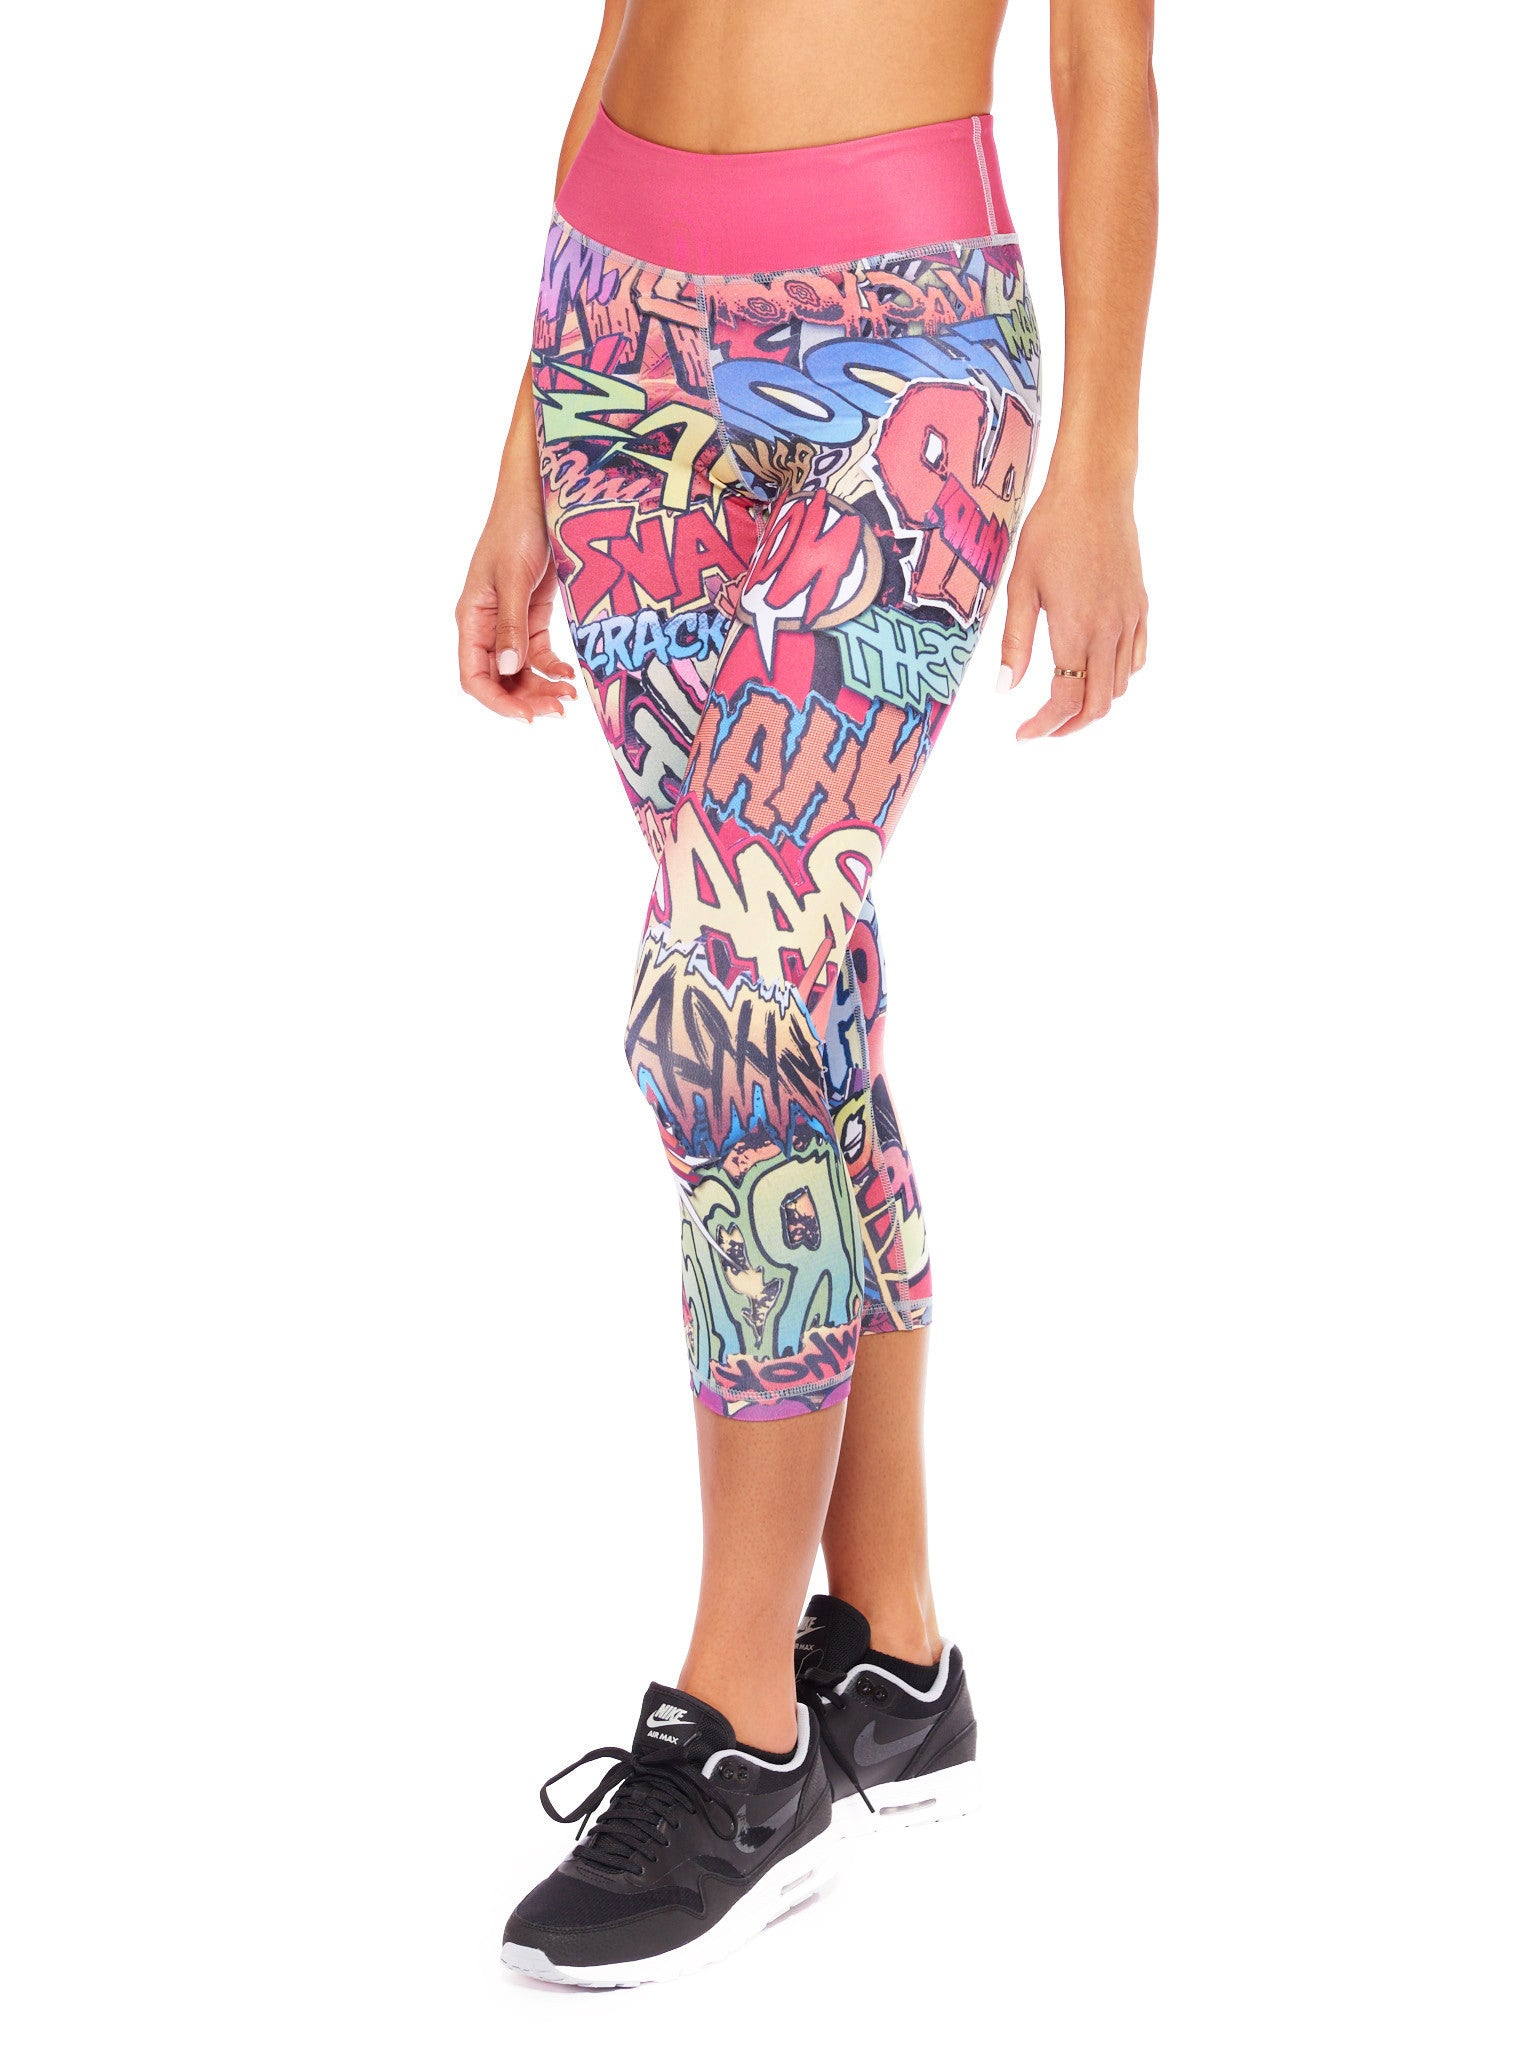 Action Packed Crop Leggings - Nuvango Gallery & Goods - 2